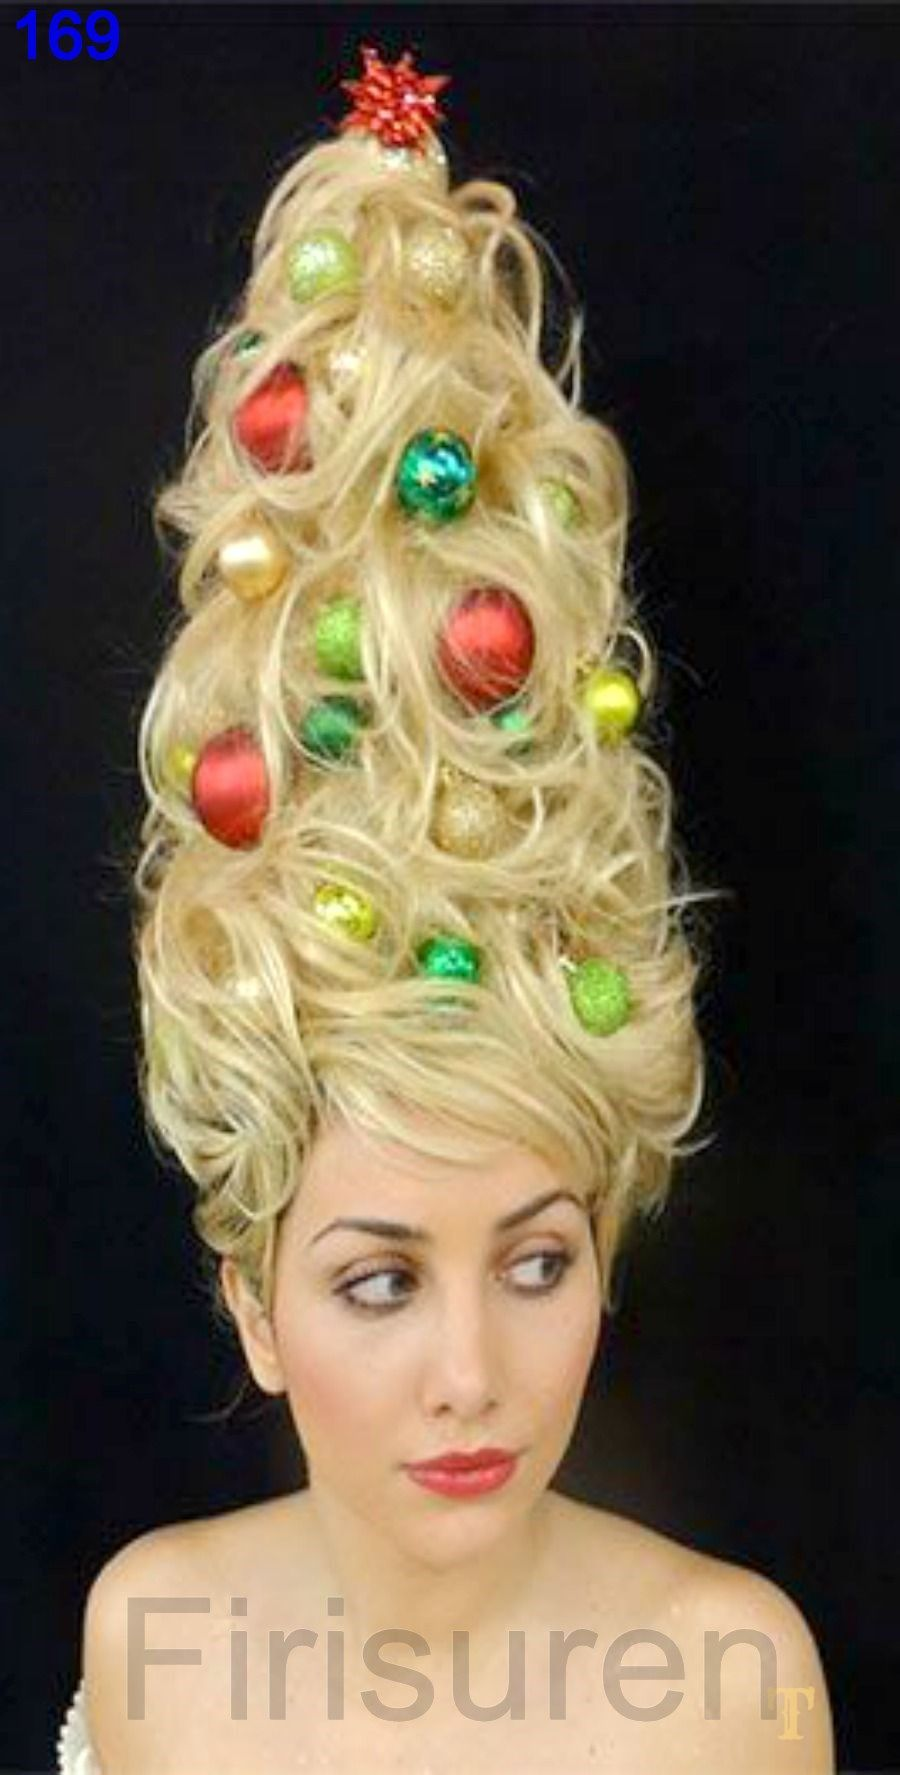 Frisuren Holiday Hairstyles Hair Styles Christmas Hairstyles